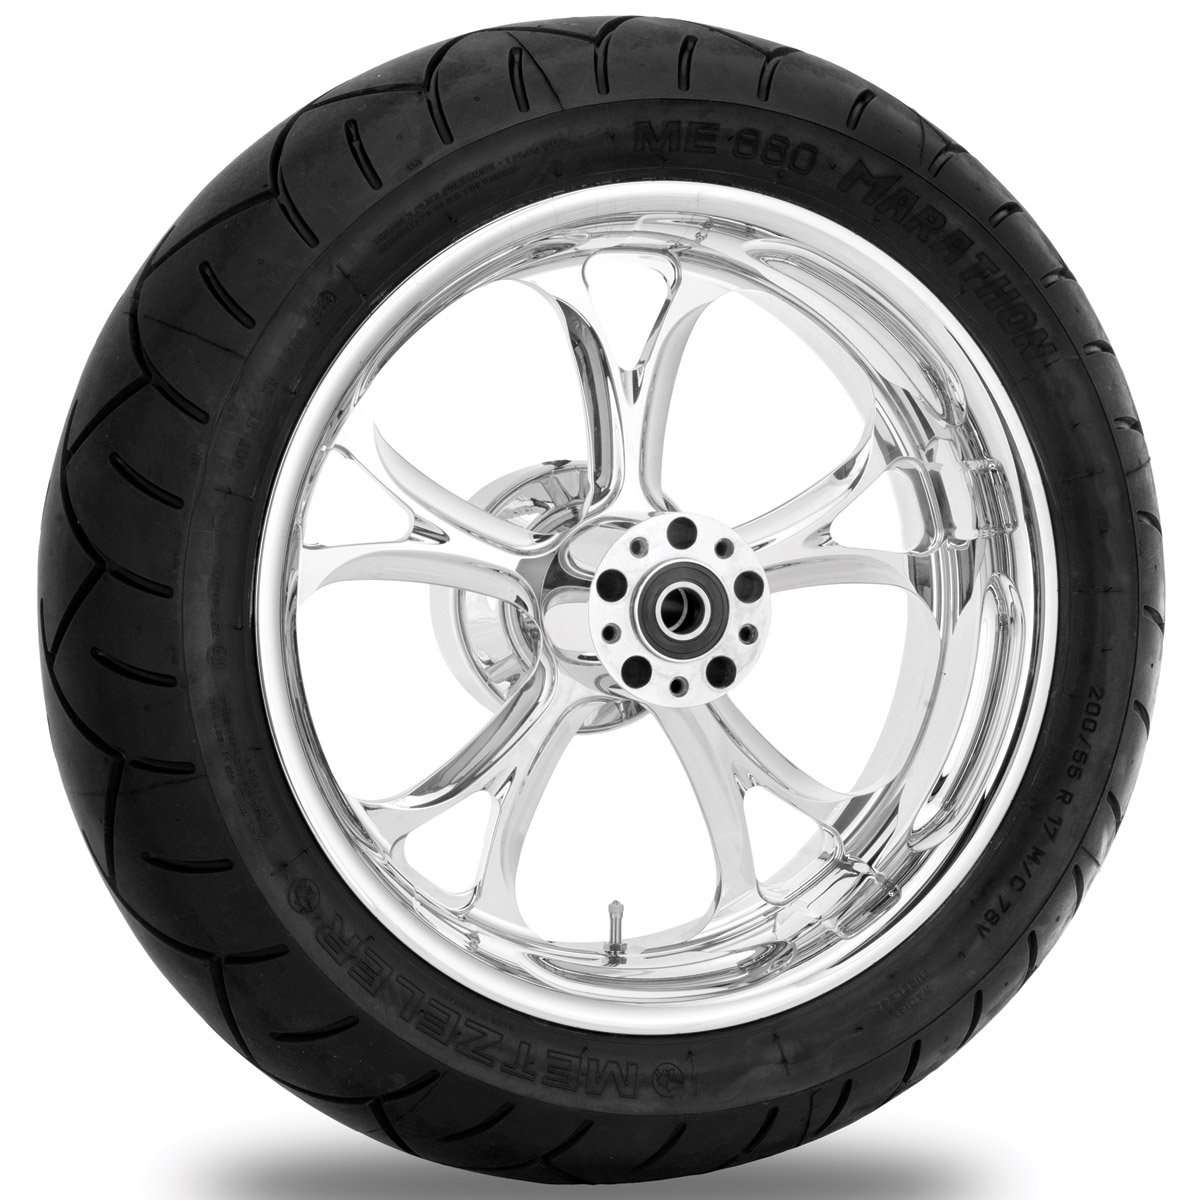 Performance Machine Luxe Chrome Rear Wheel Package, 17″ x 6″ with ABS